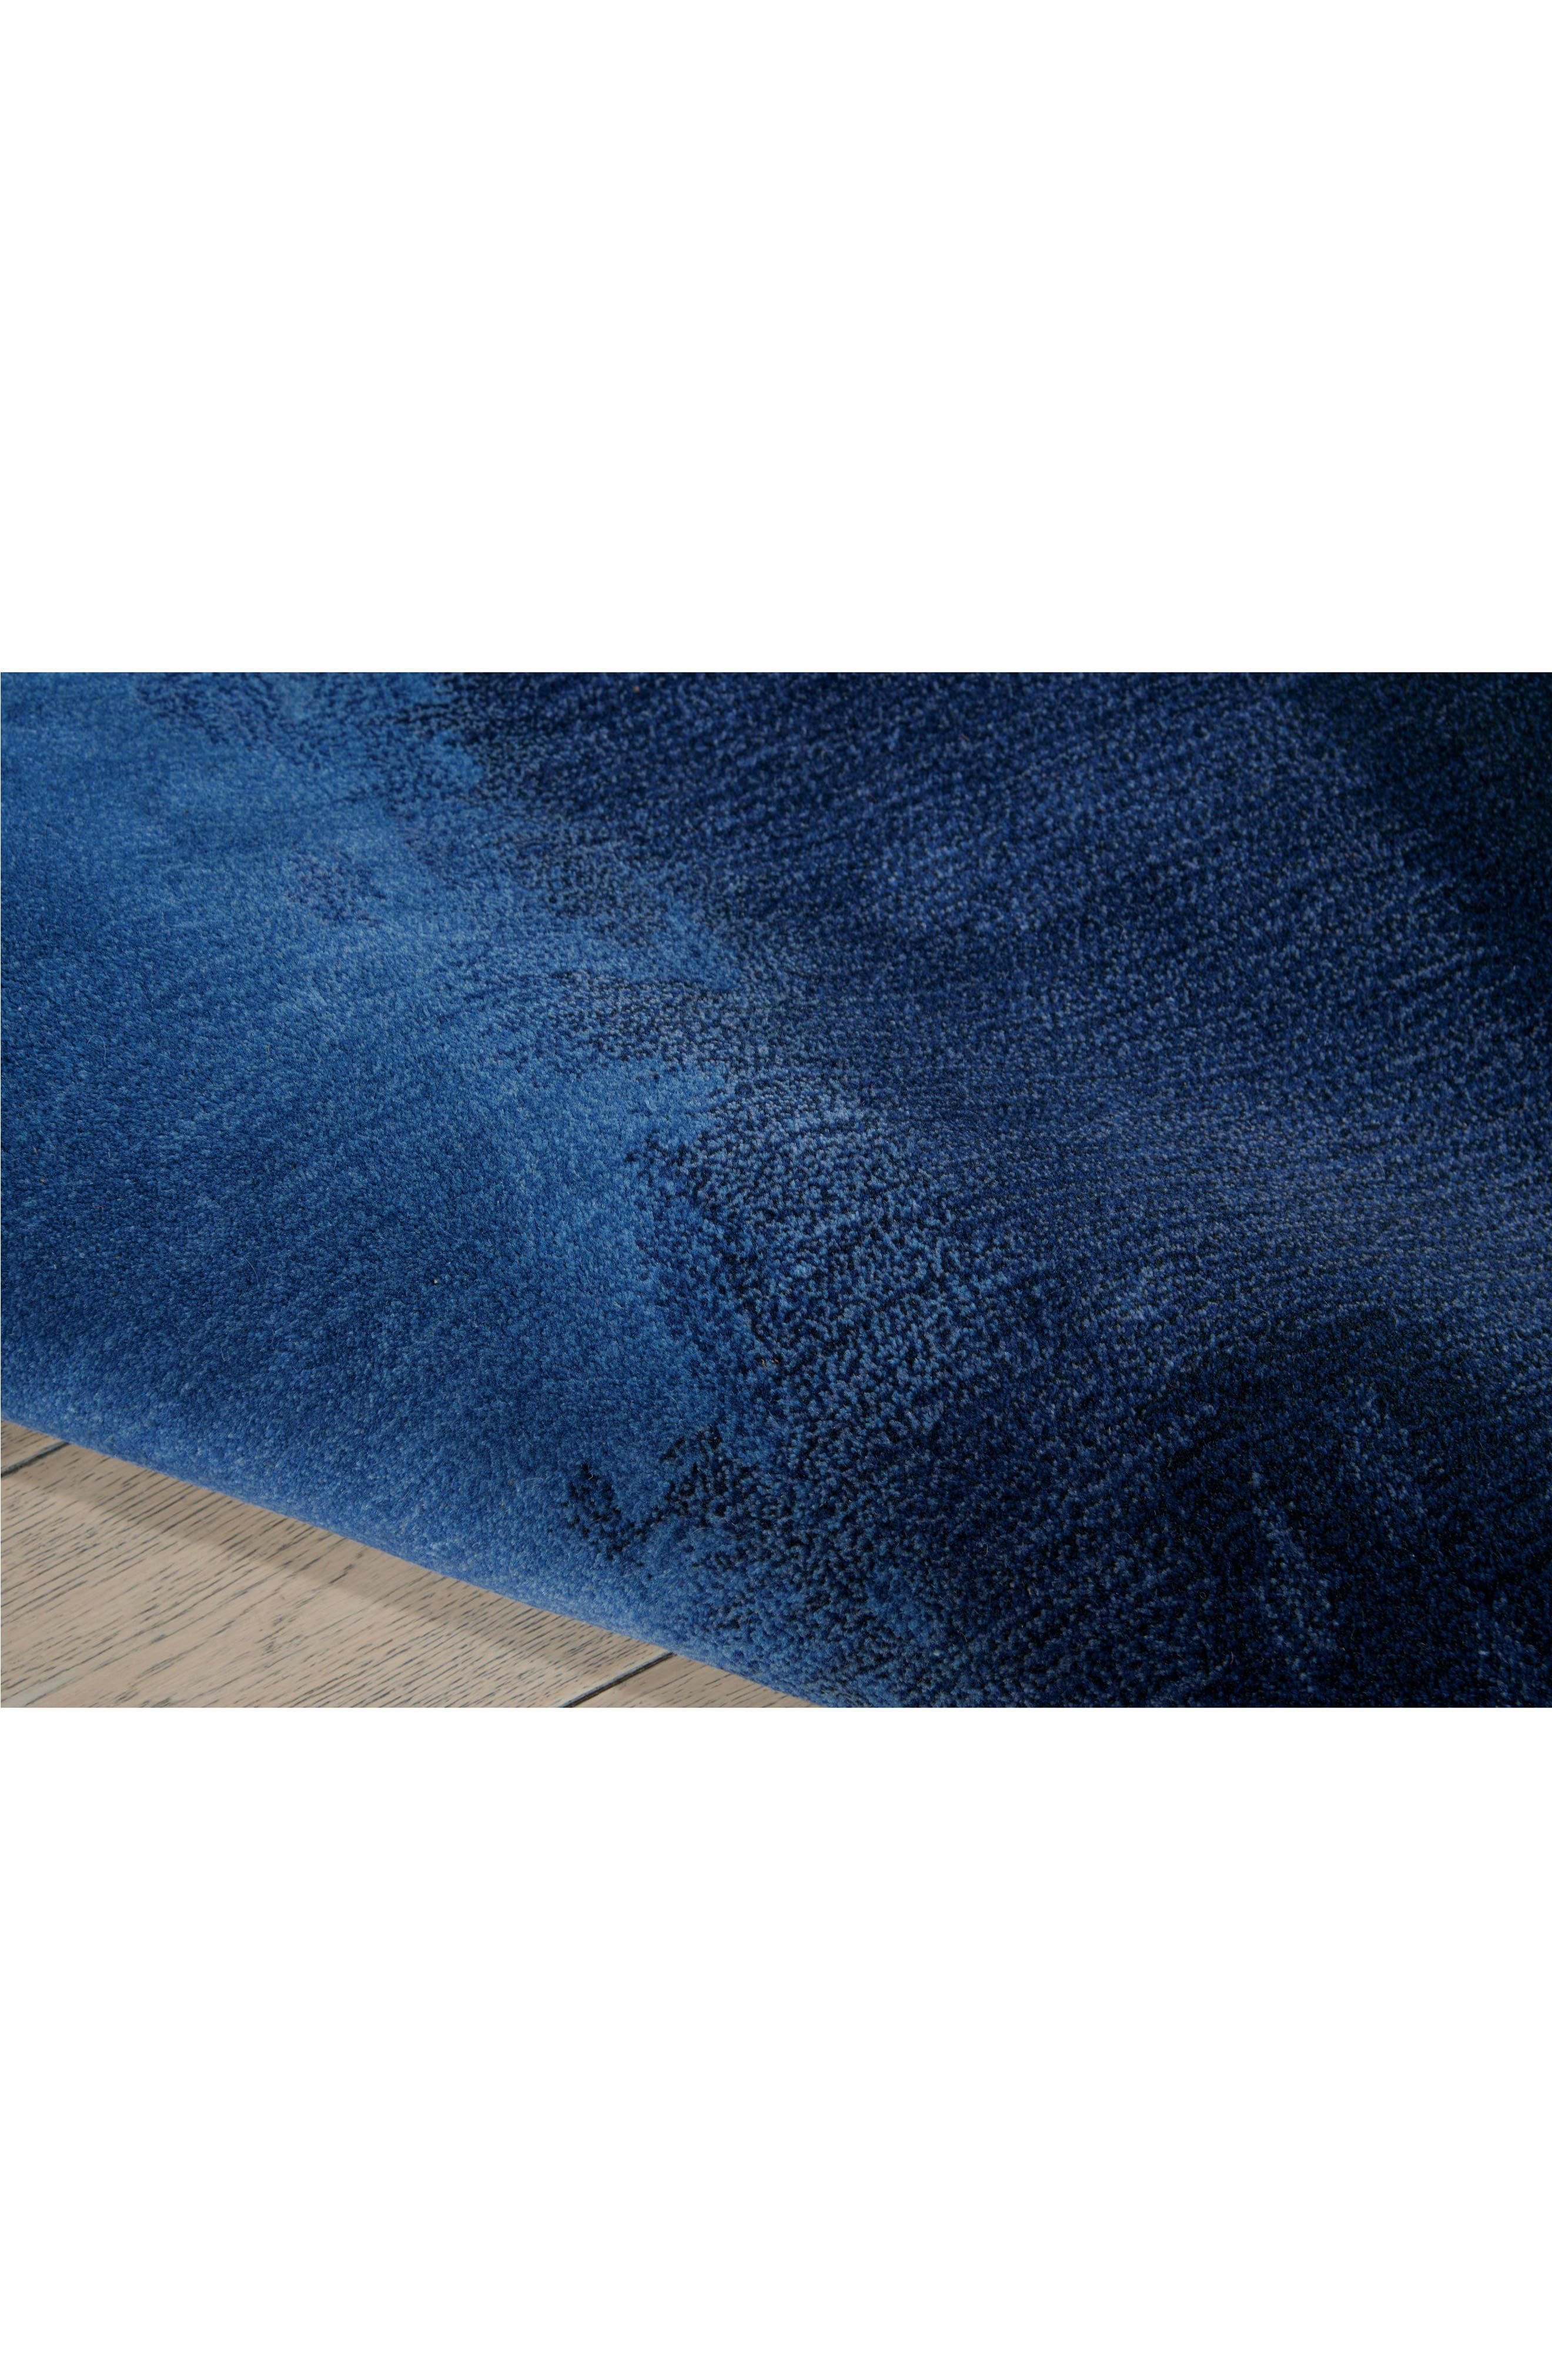 Luster Wash Wool Area Rug,                             Alternate thumbnail 13, color,